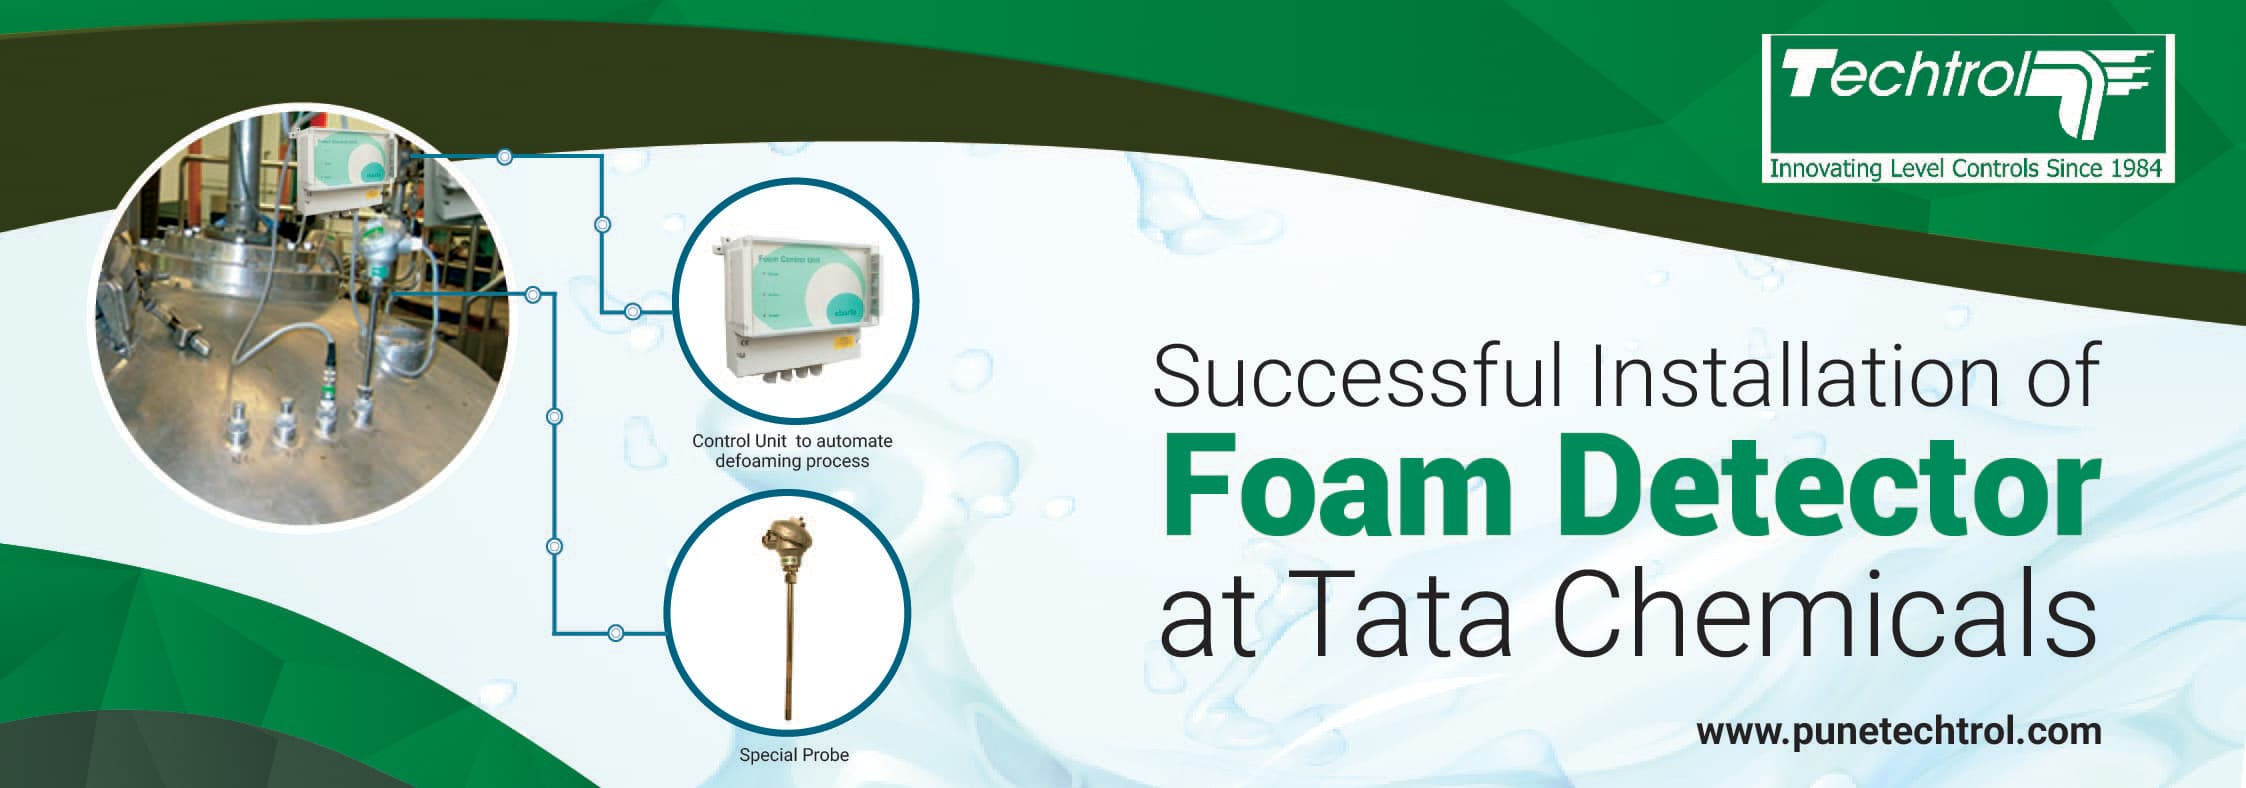 Successful Installation of Foam Detector at Tata Chemicals